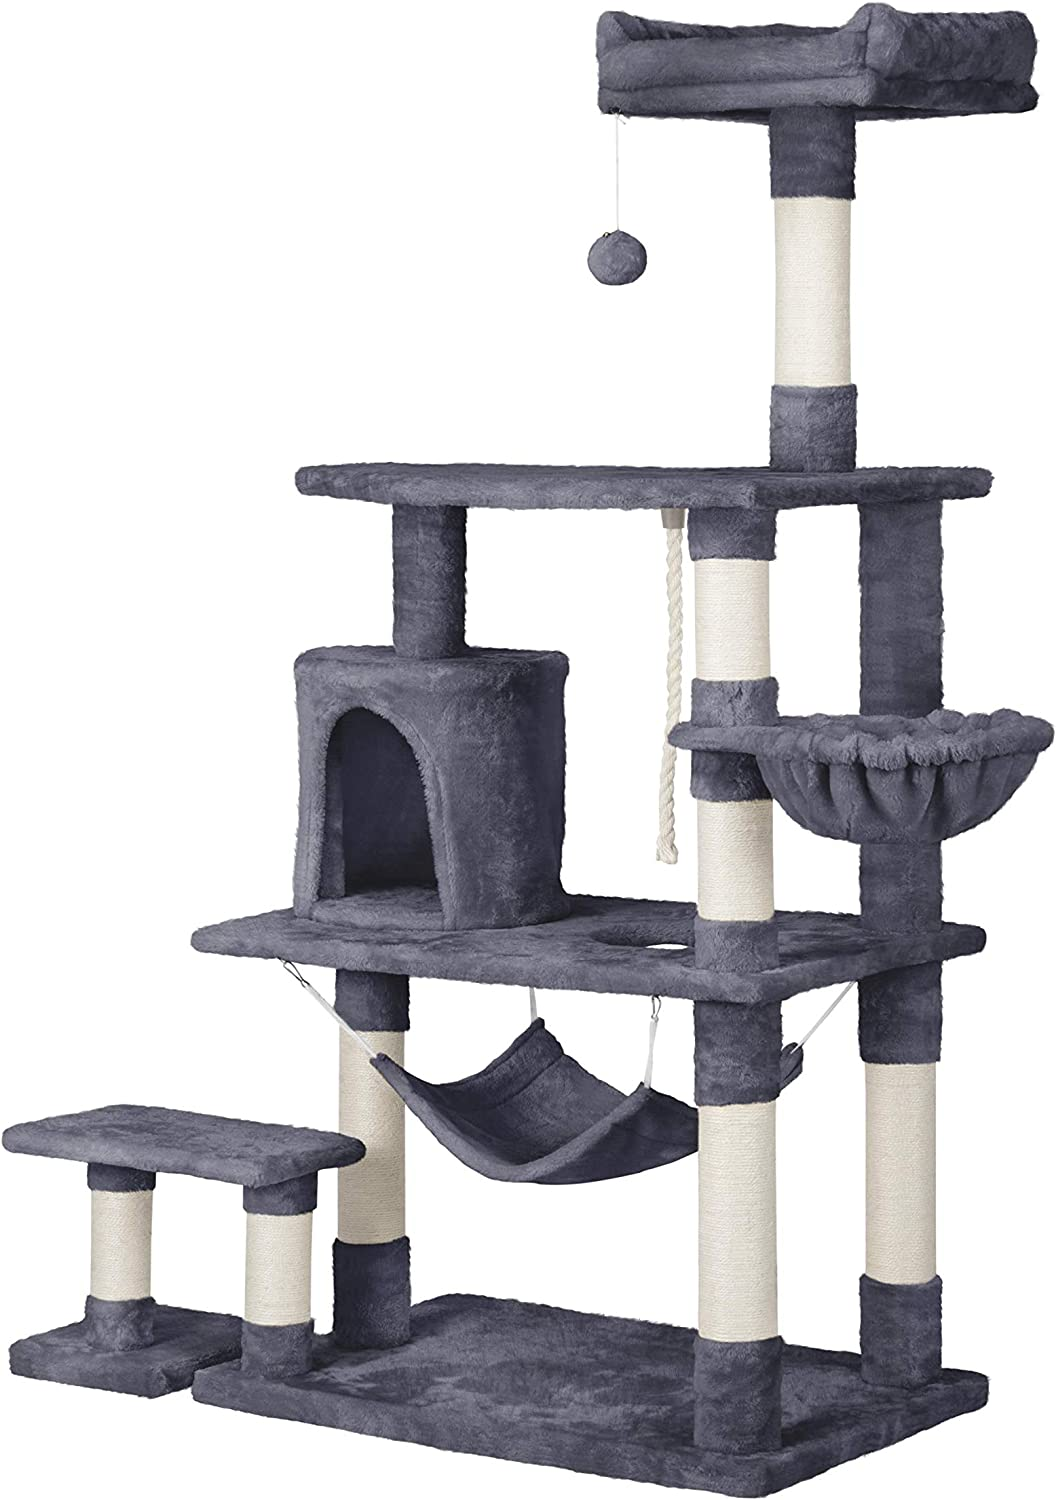 YAHEETECH 61.5in Multi-Level Cat Tree Cat Tower w/Condo Scratching Posts Removable Platform & Hammock, Cat Stand House Furniture Activity Tower for Kittens, Cats, and Pets